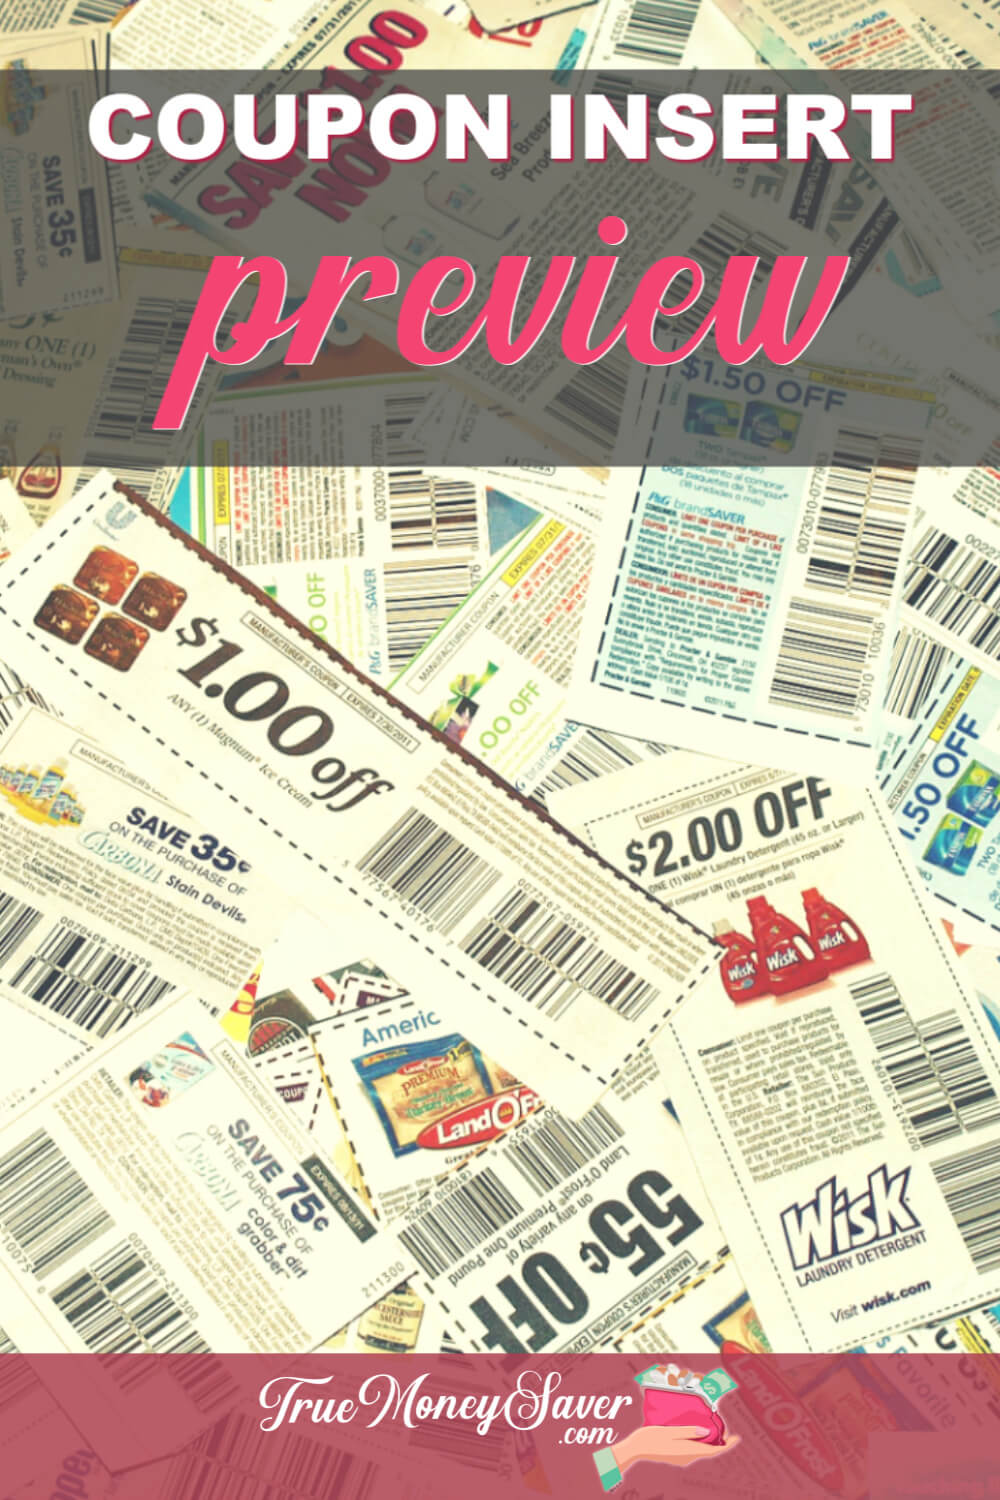 9/22/19 Coupon Insert Preview: (1) SmartSource, (1) RetailMeNot